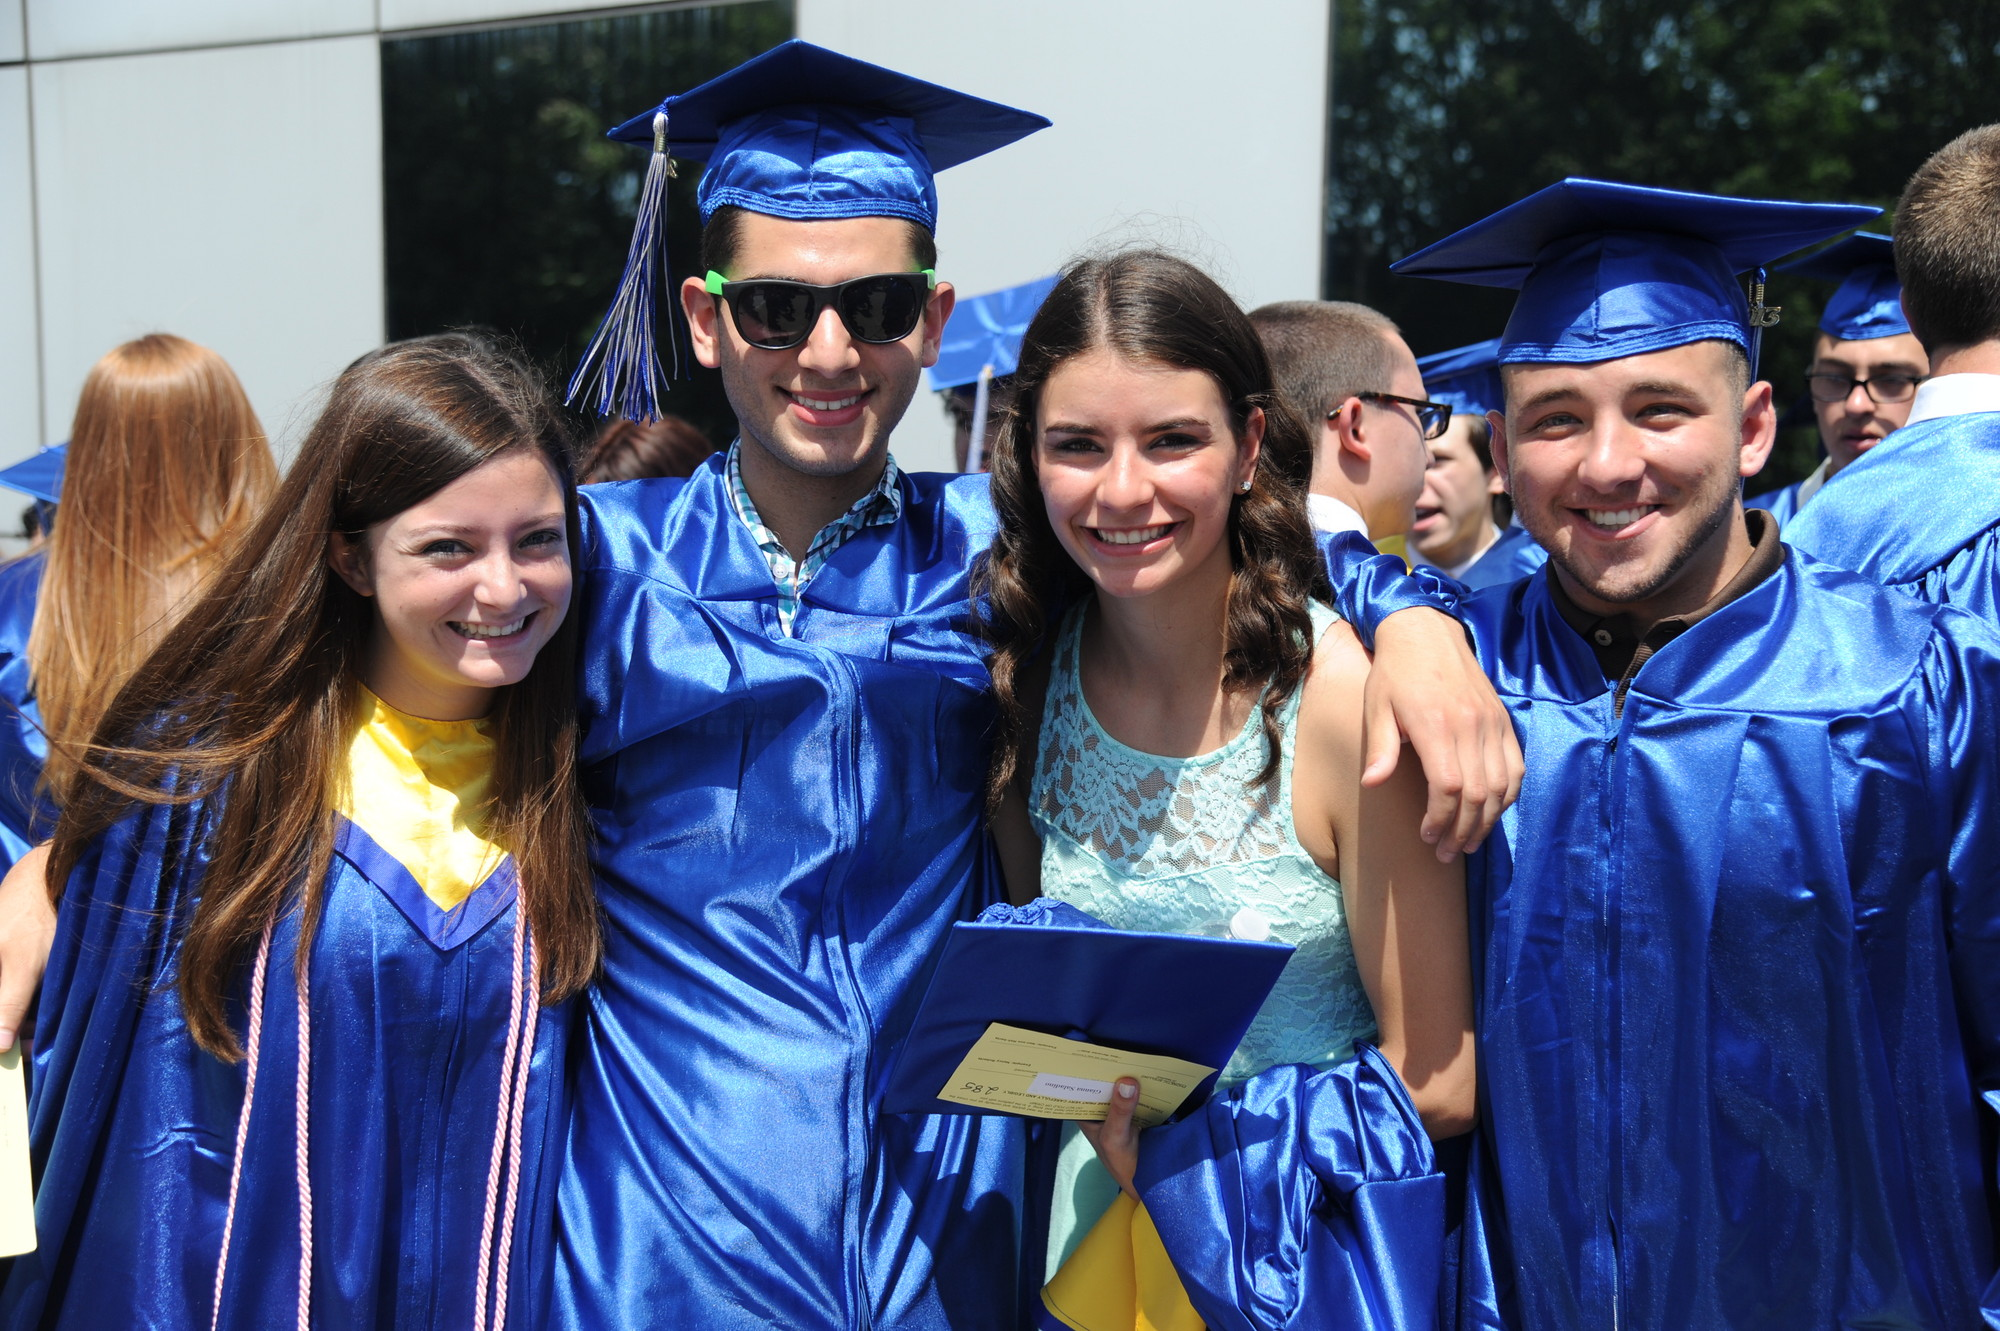 Gabrielle Shaw, Shaun Samuels, Gianna Saladino and  Anthony Schiano were all smiles on graduation day.